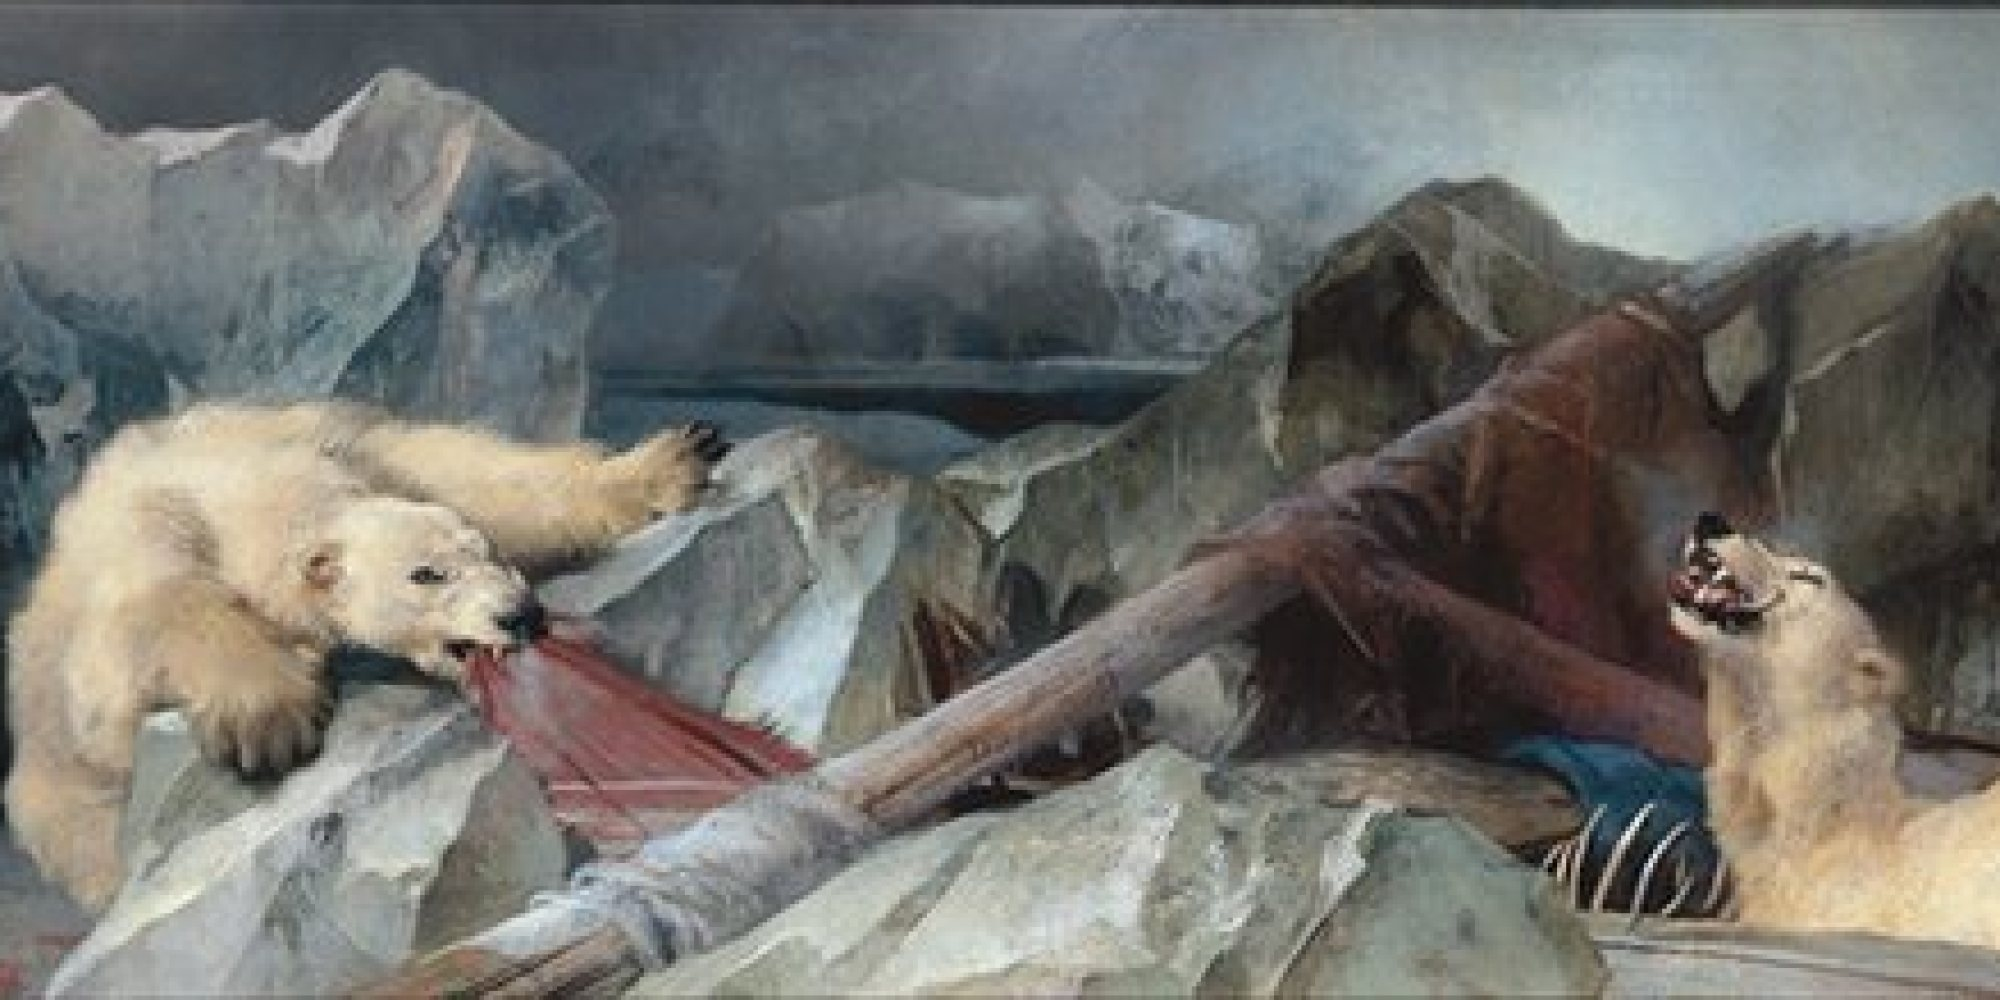 Sir Edwin Landseer, 'Man proposes, God disposes' 1864.